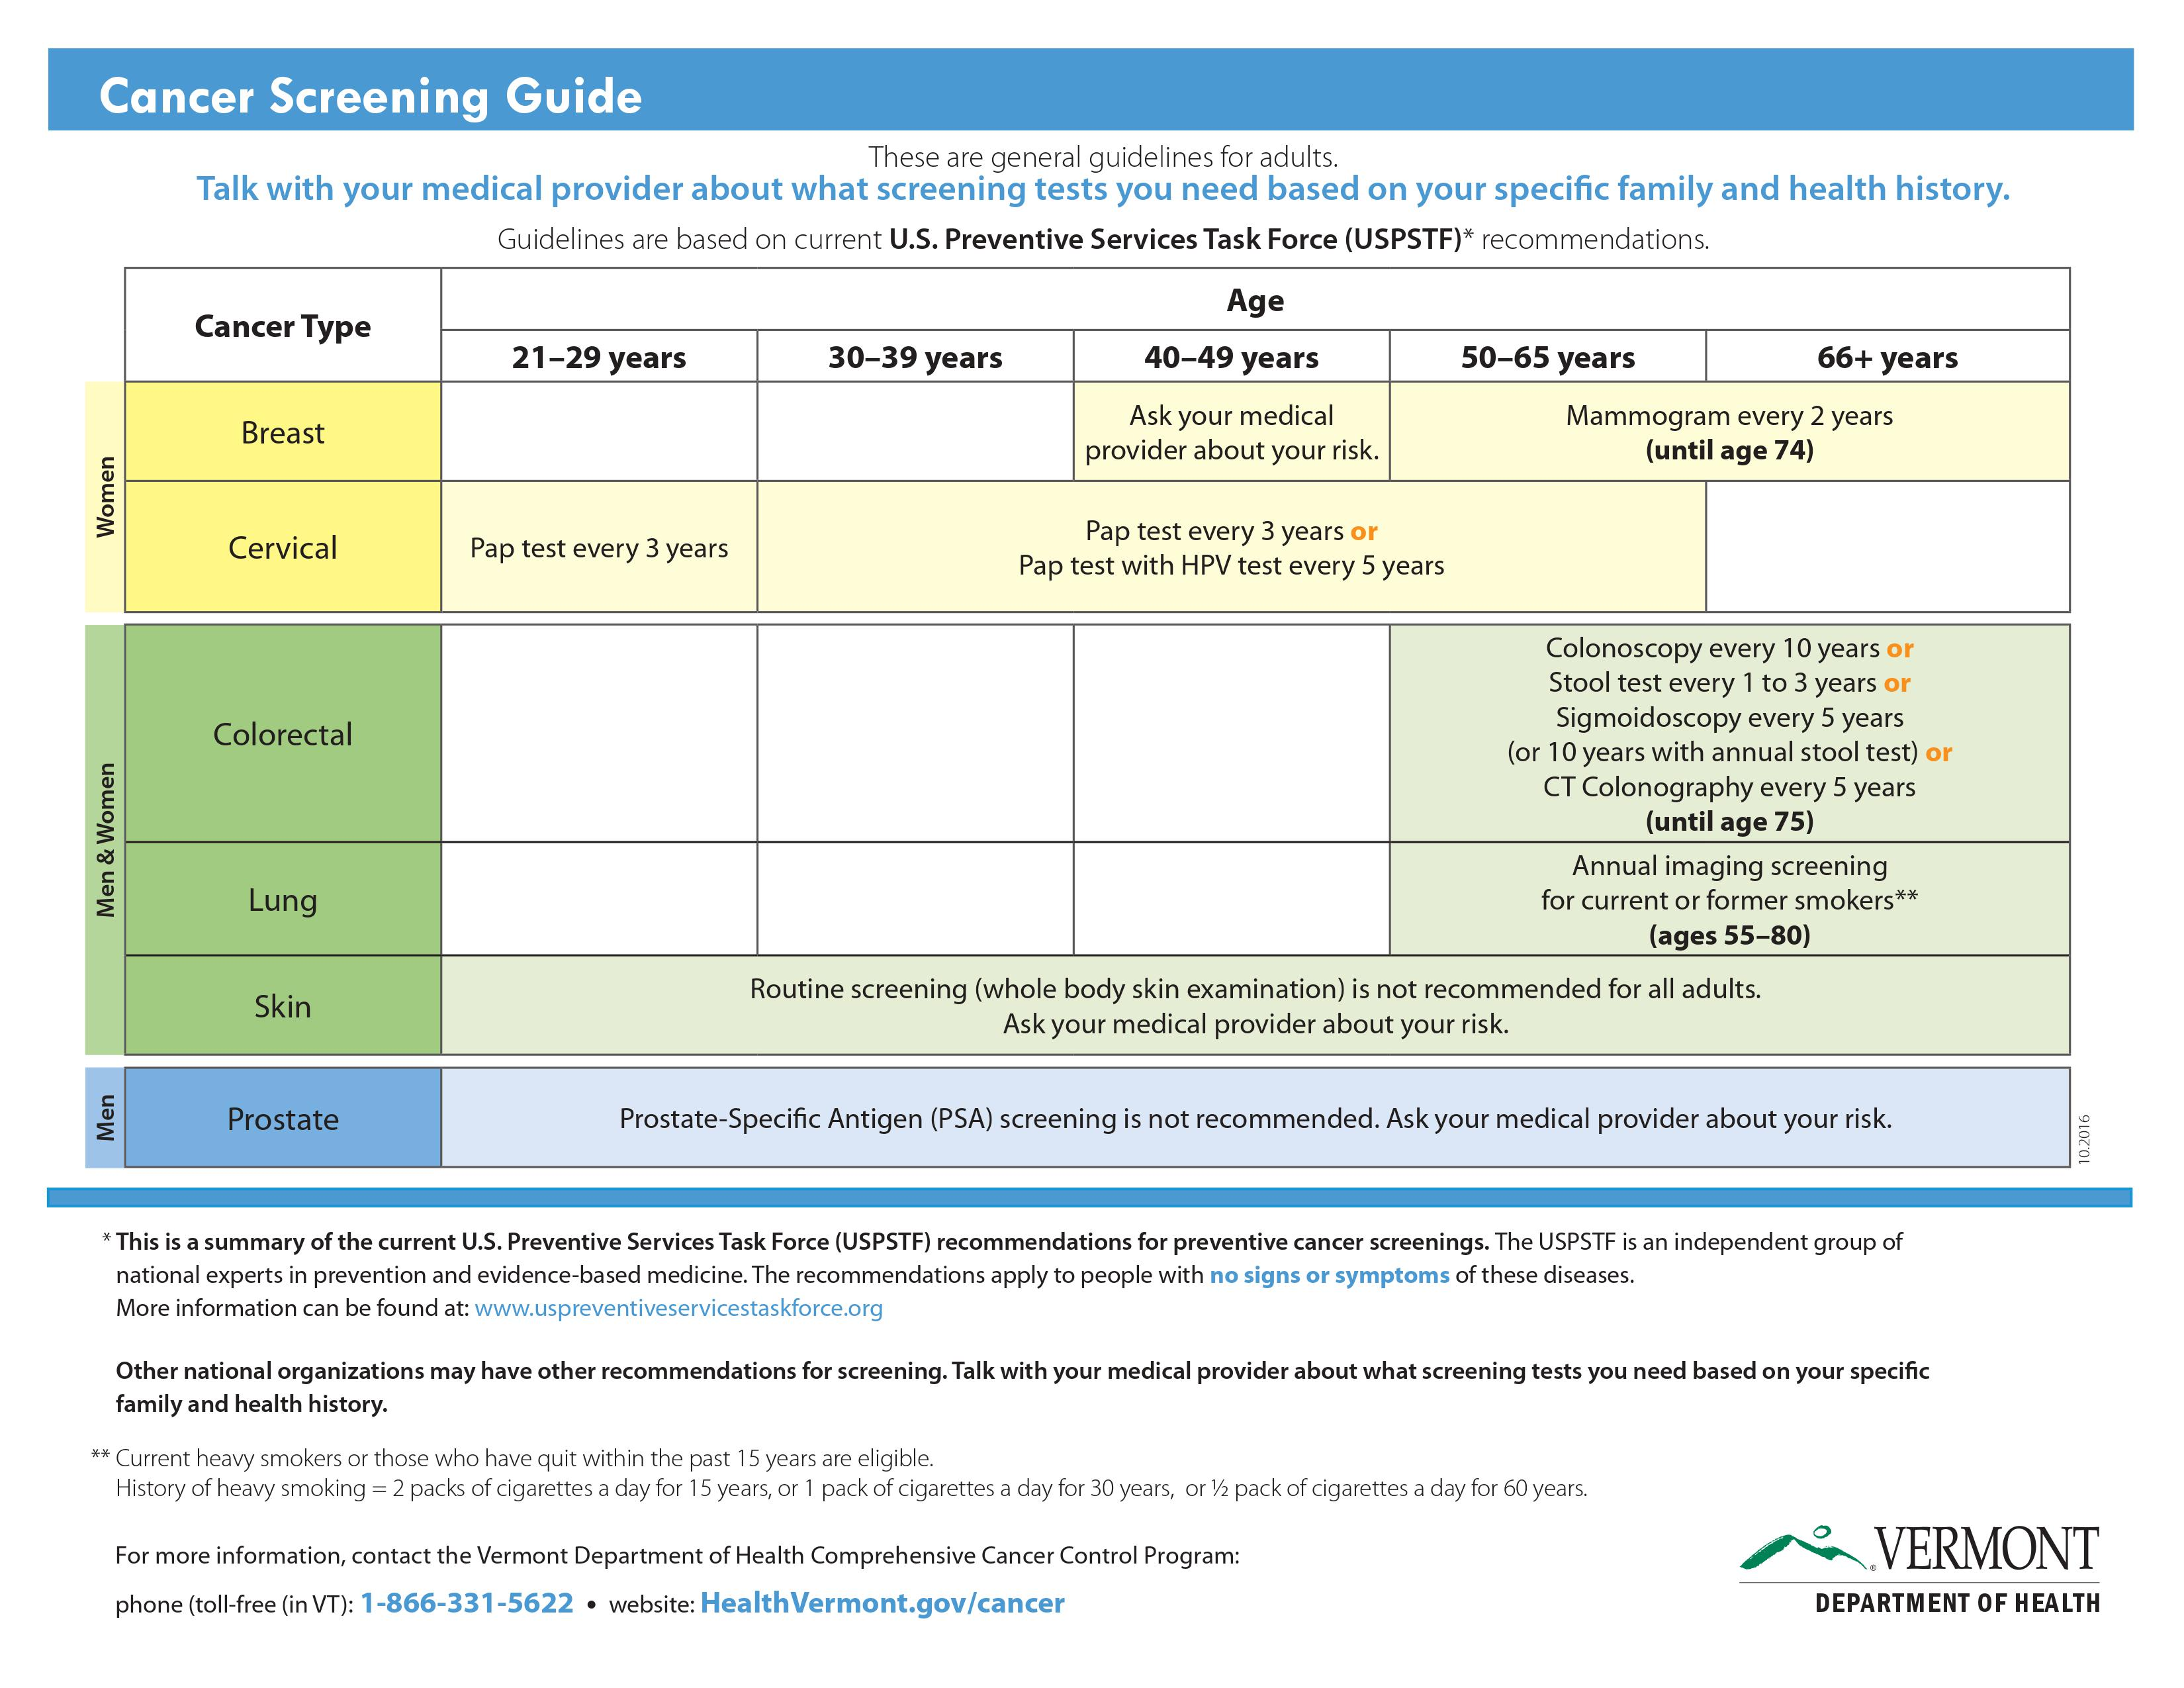 Cancer Screening Guidelines We